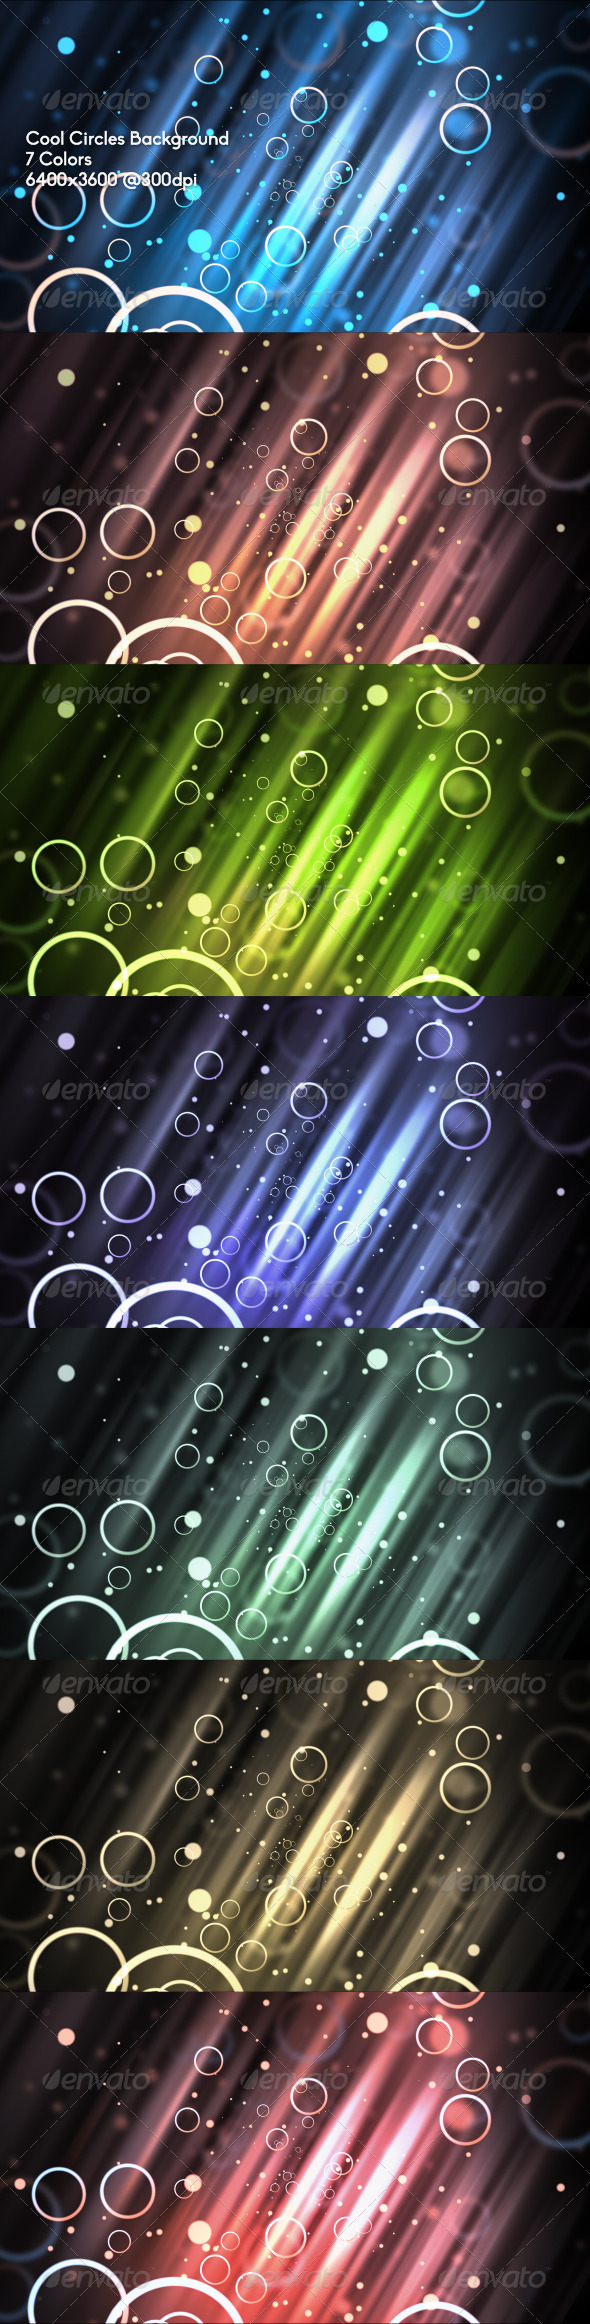 Cool Circles Background - Abstract Backgrounds